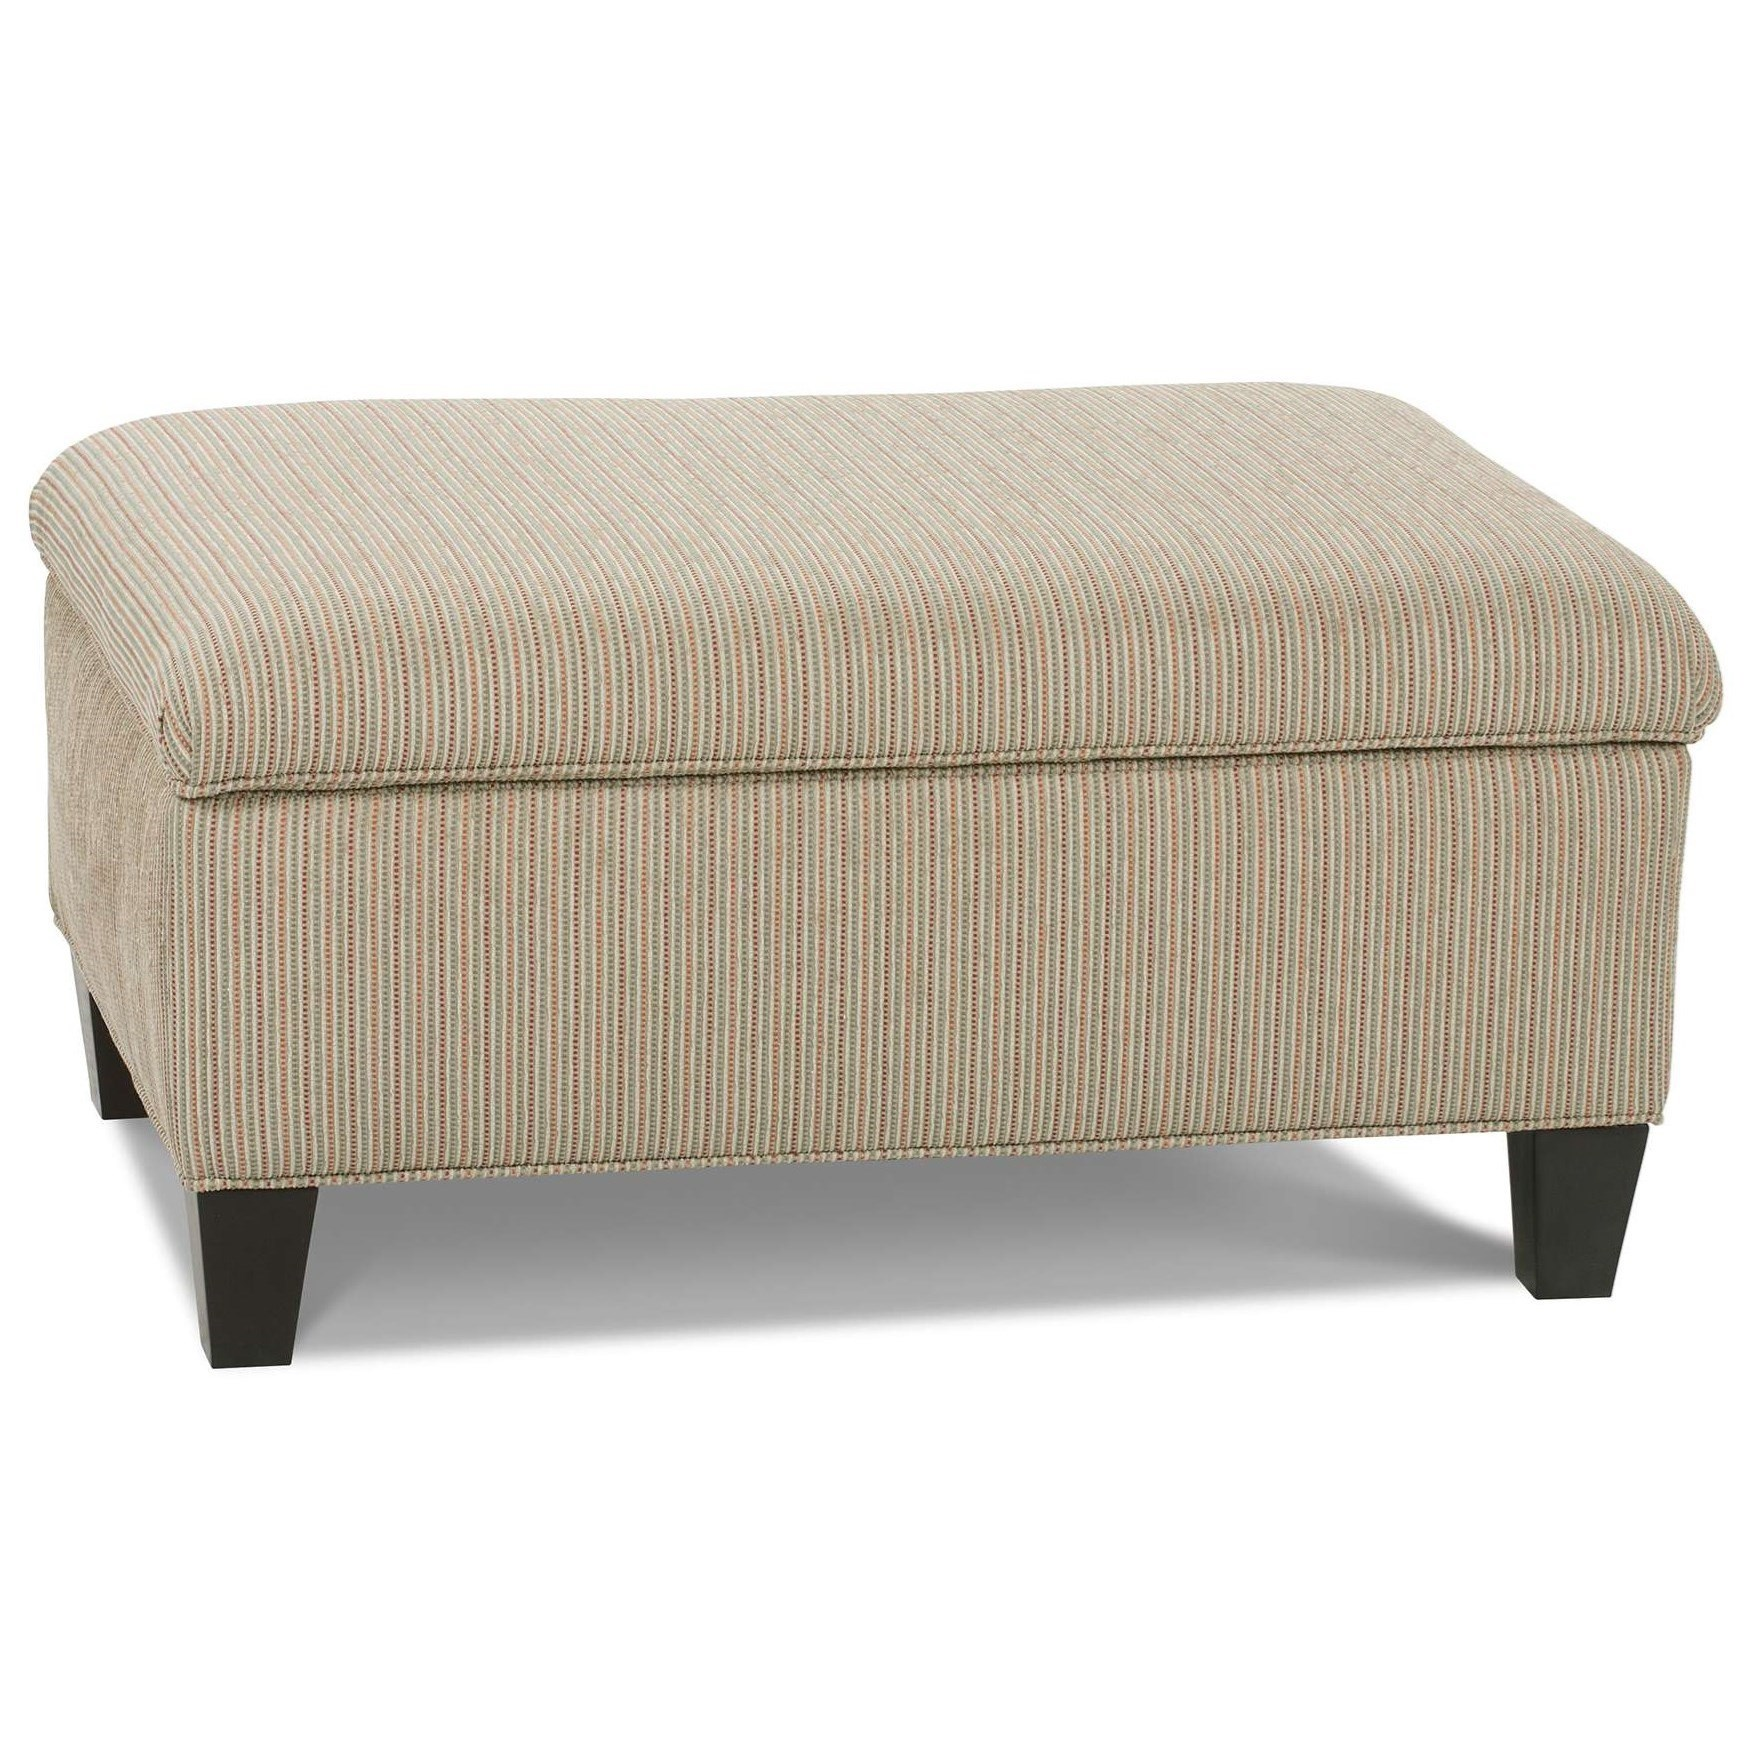 Ottoman Uses Rowe Chairs And Accents Hess Rectangular Storage Ottoman